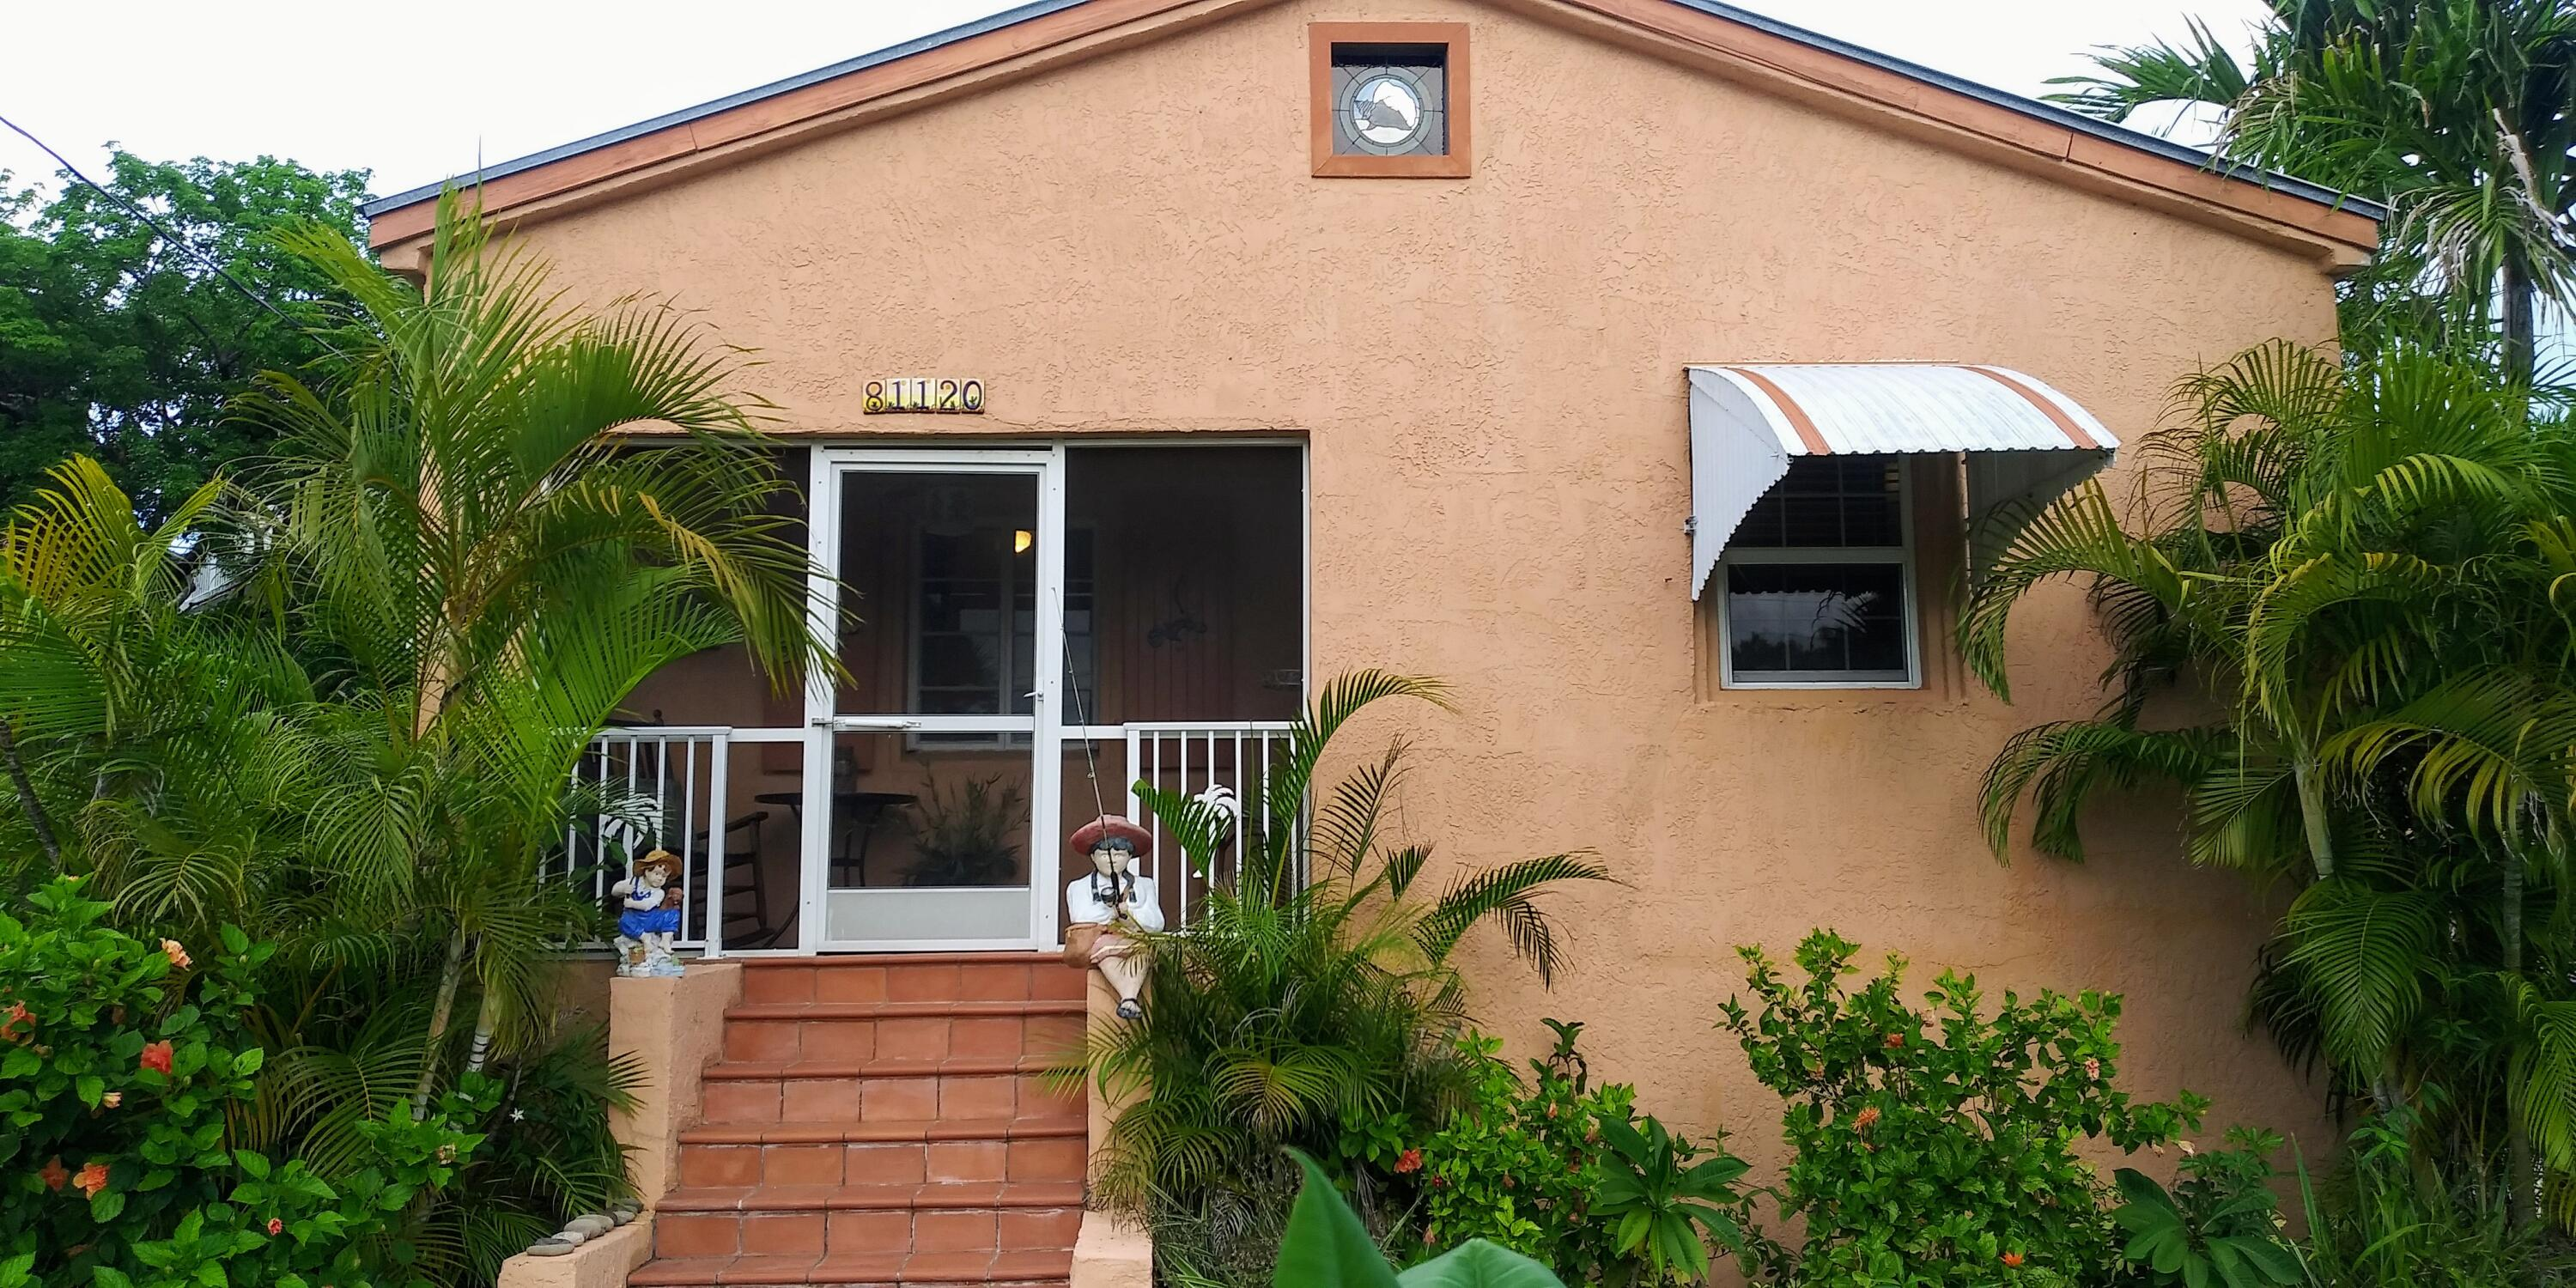 81120 Old Highway Property Photo 1